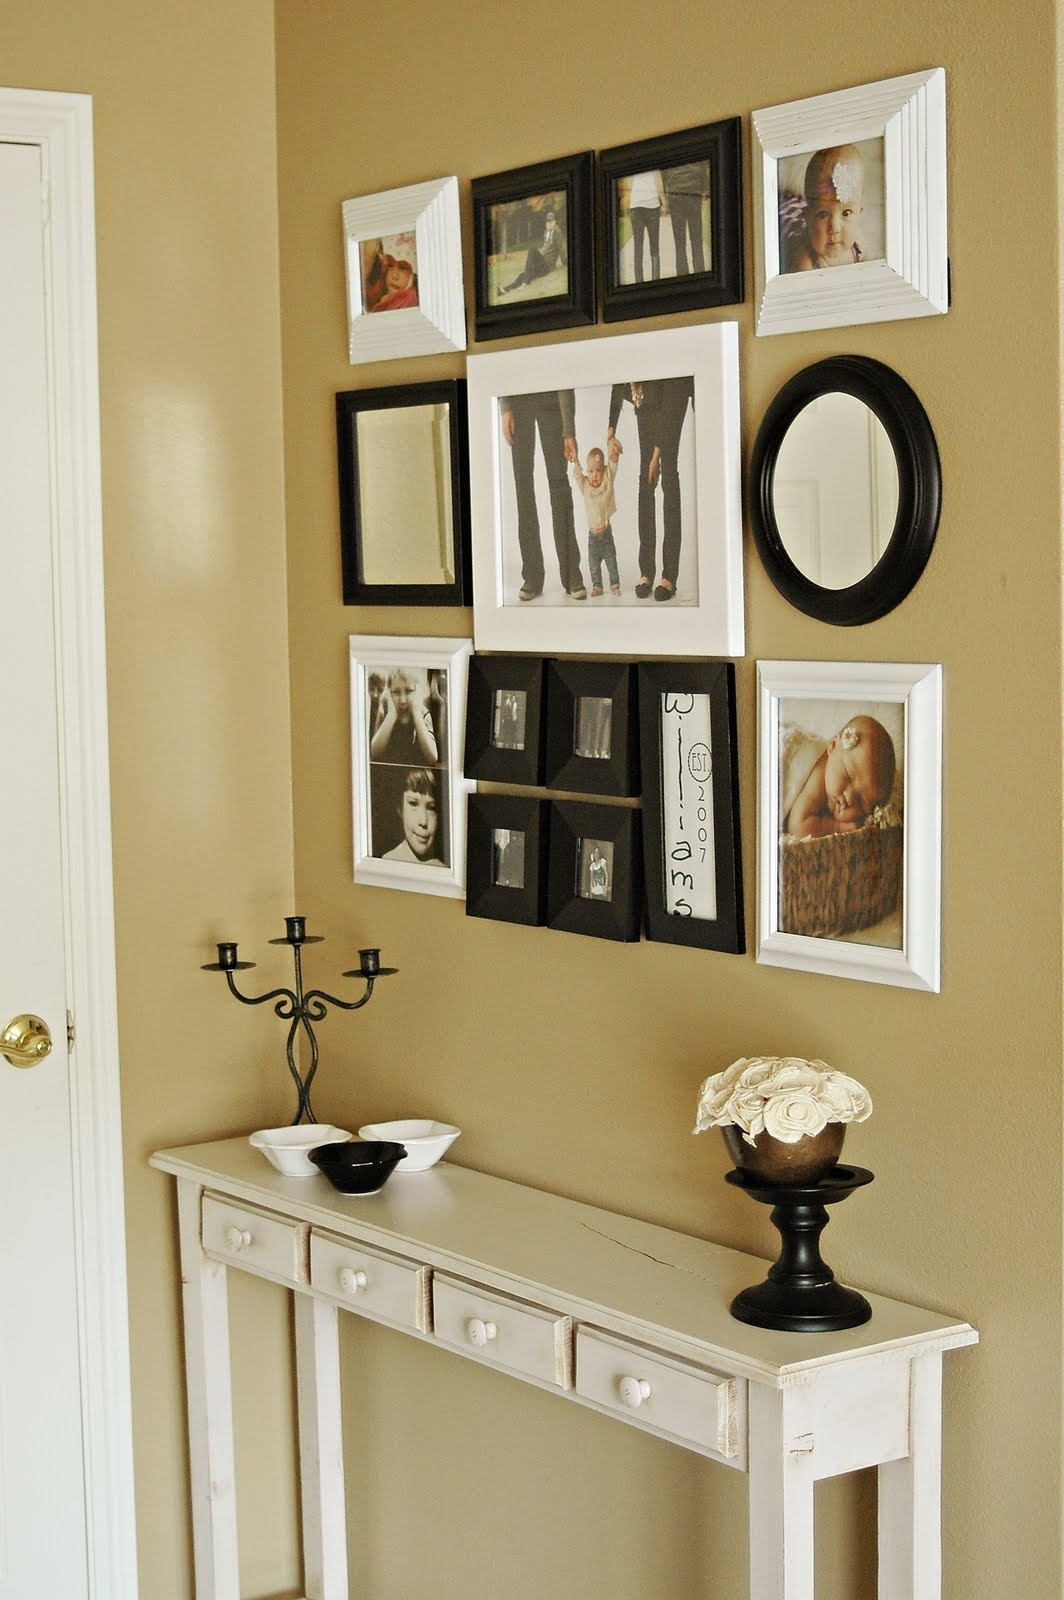 Interior | Photo Gallery Idea Entryway Wall Decor – Entryway Throughout Most Recently Released Entryway Wall Accents (Gallery 2 of 15)